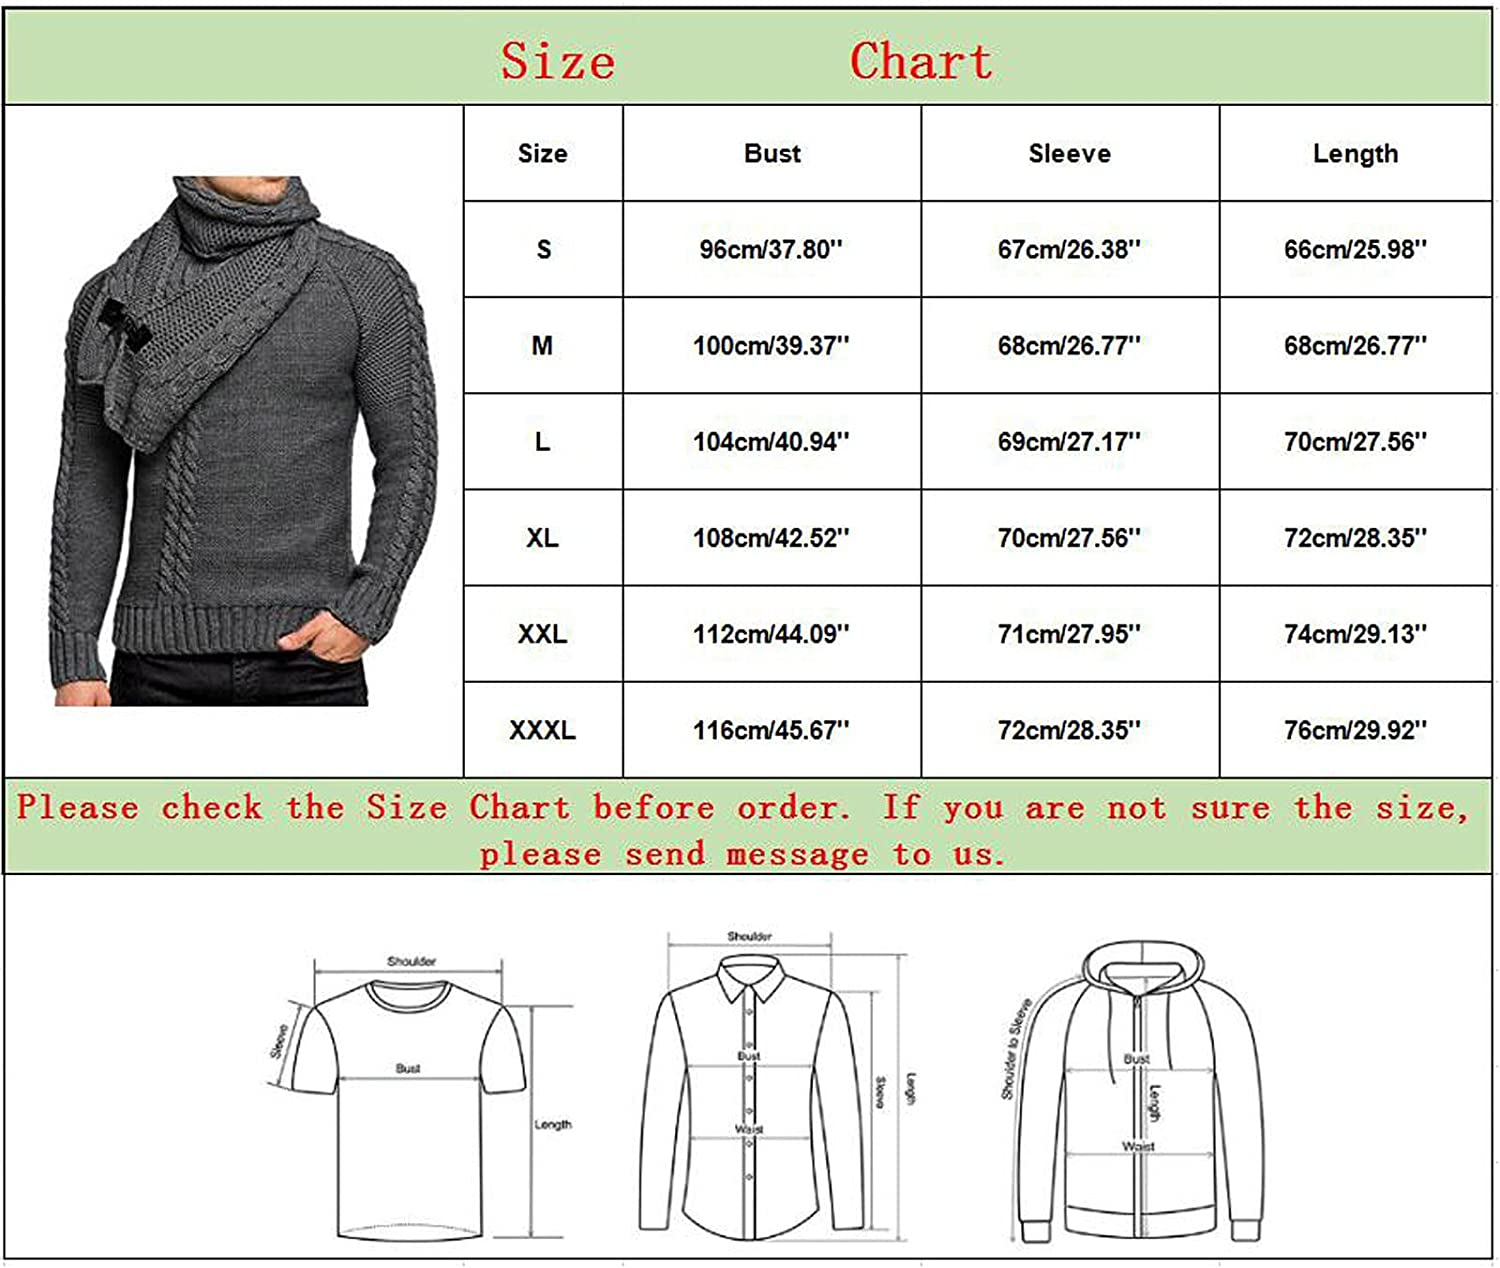 Huangse Men's Sweater and Scarf 2 Piece Sets Slim Fit Turtleneck Wool Blend Sweater Casual Twisted Knitted Pullover Sweaters